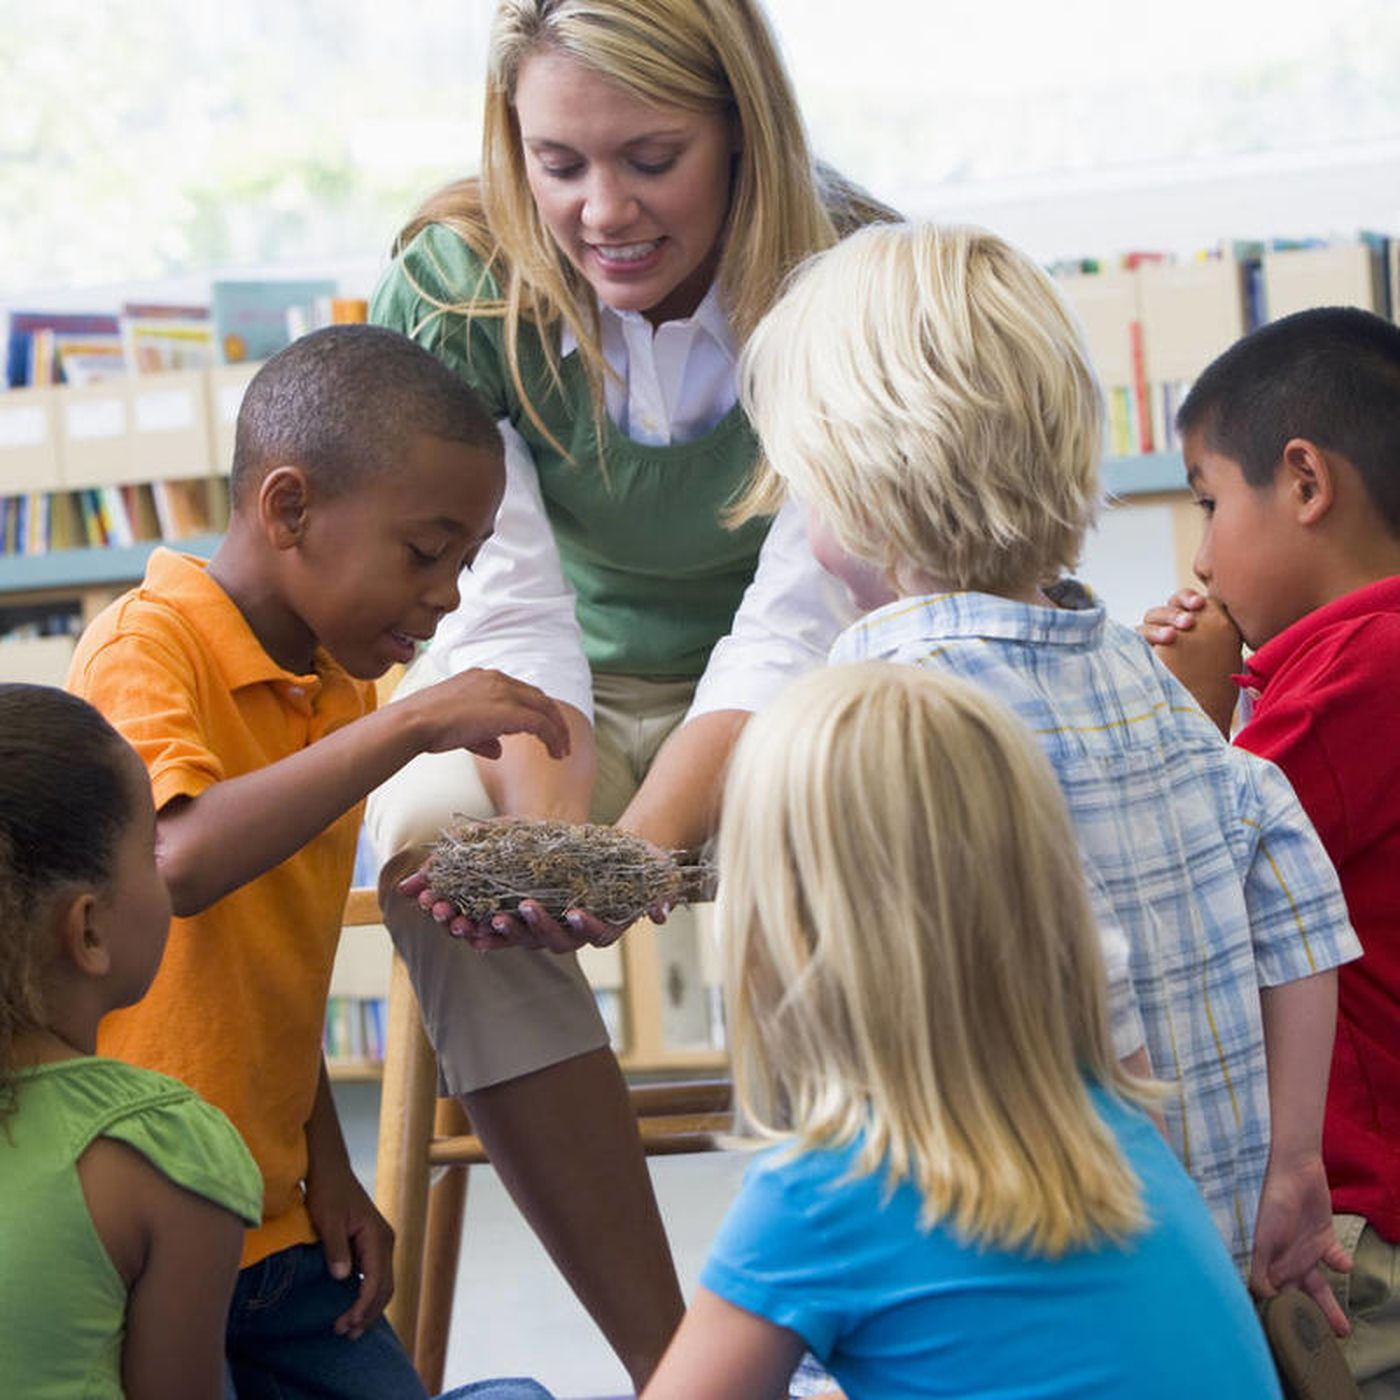 Redshirt Your Kids Study Adds Fuel To >> Why Your Child Should Start Kindergarten A Year Late